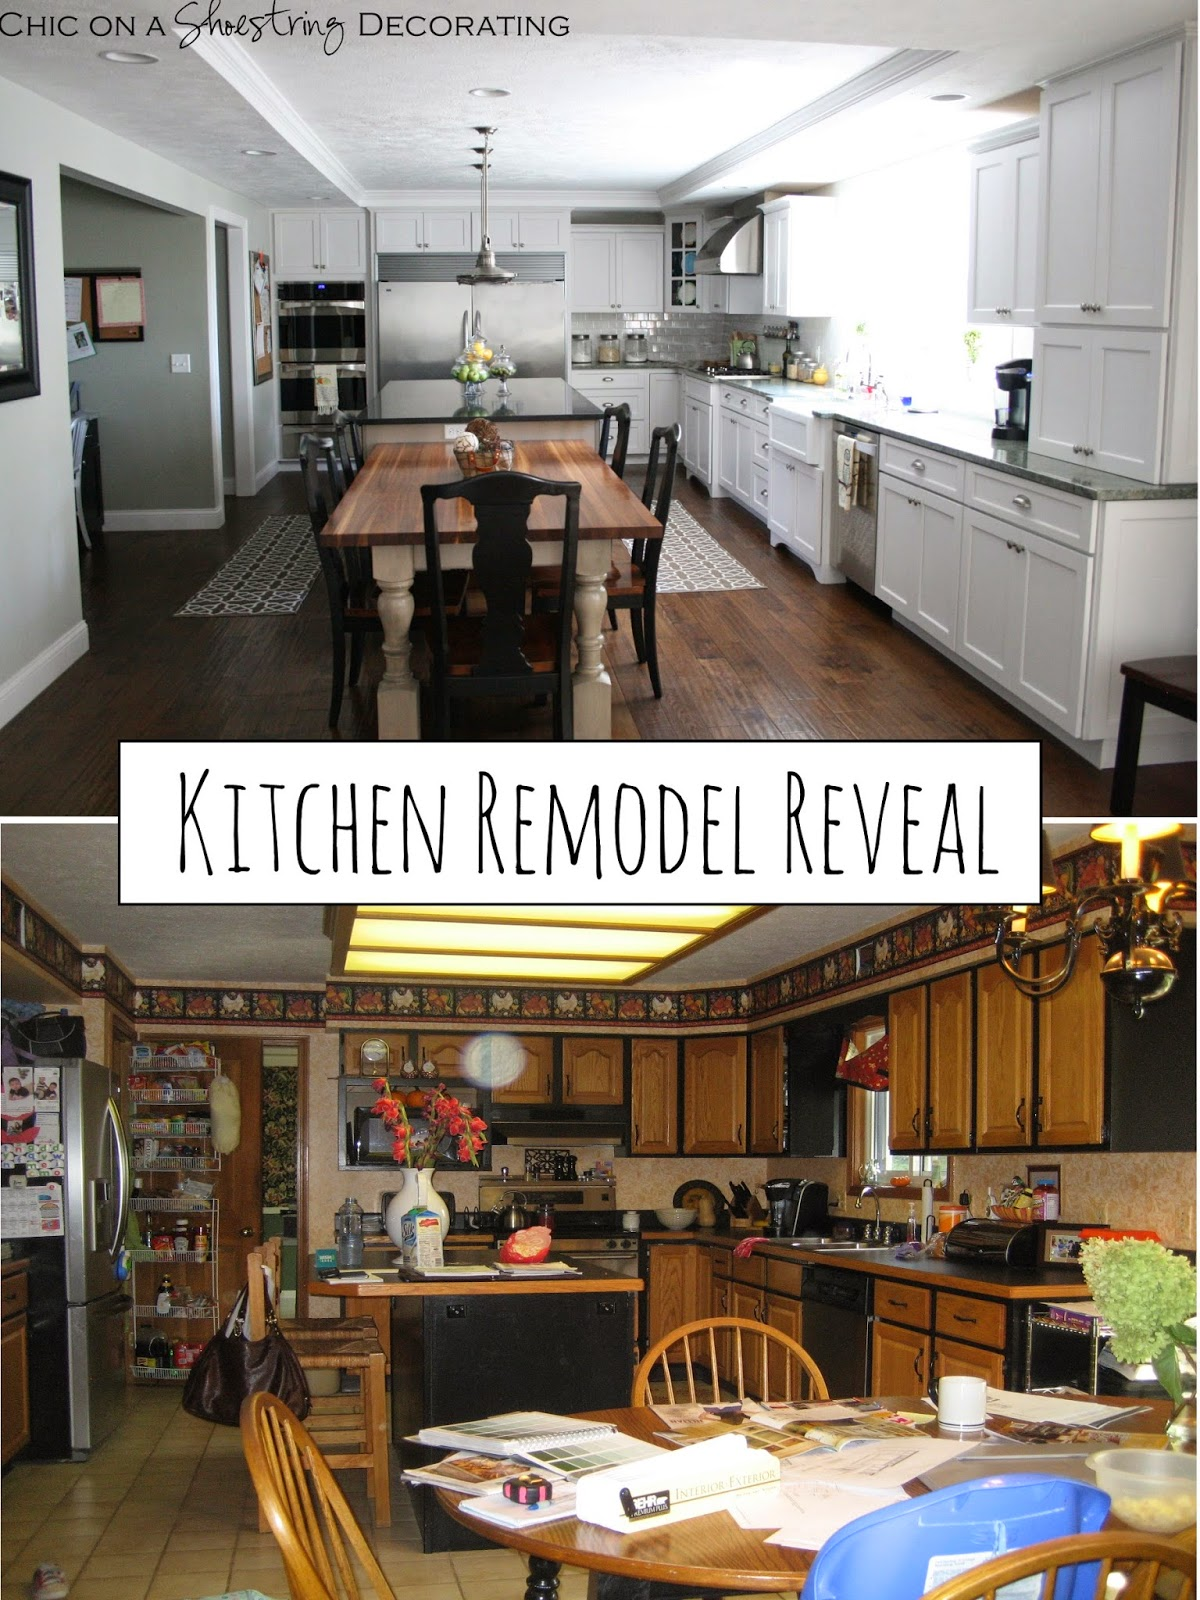 white kitchen remodel subway tile chic on a shoestring decorating  client kitchen remodel reveal  rh   chiconashoestringdecoratingblog com